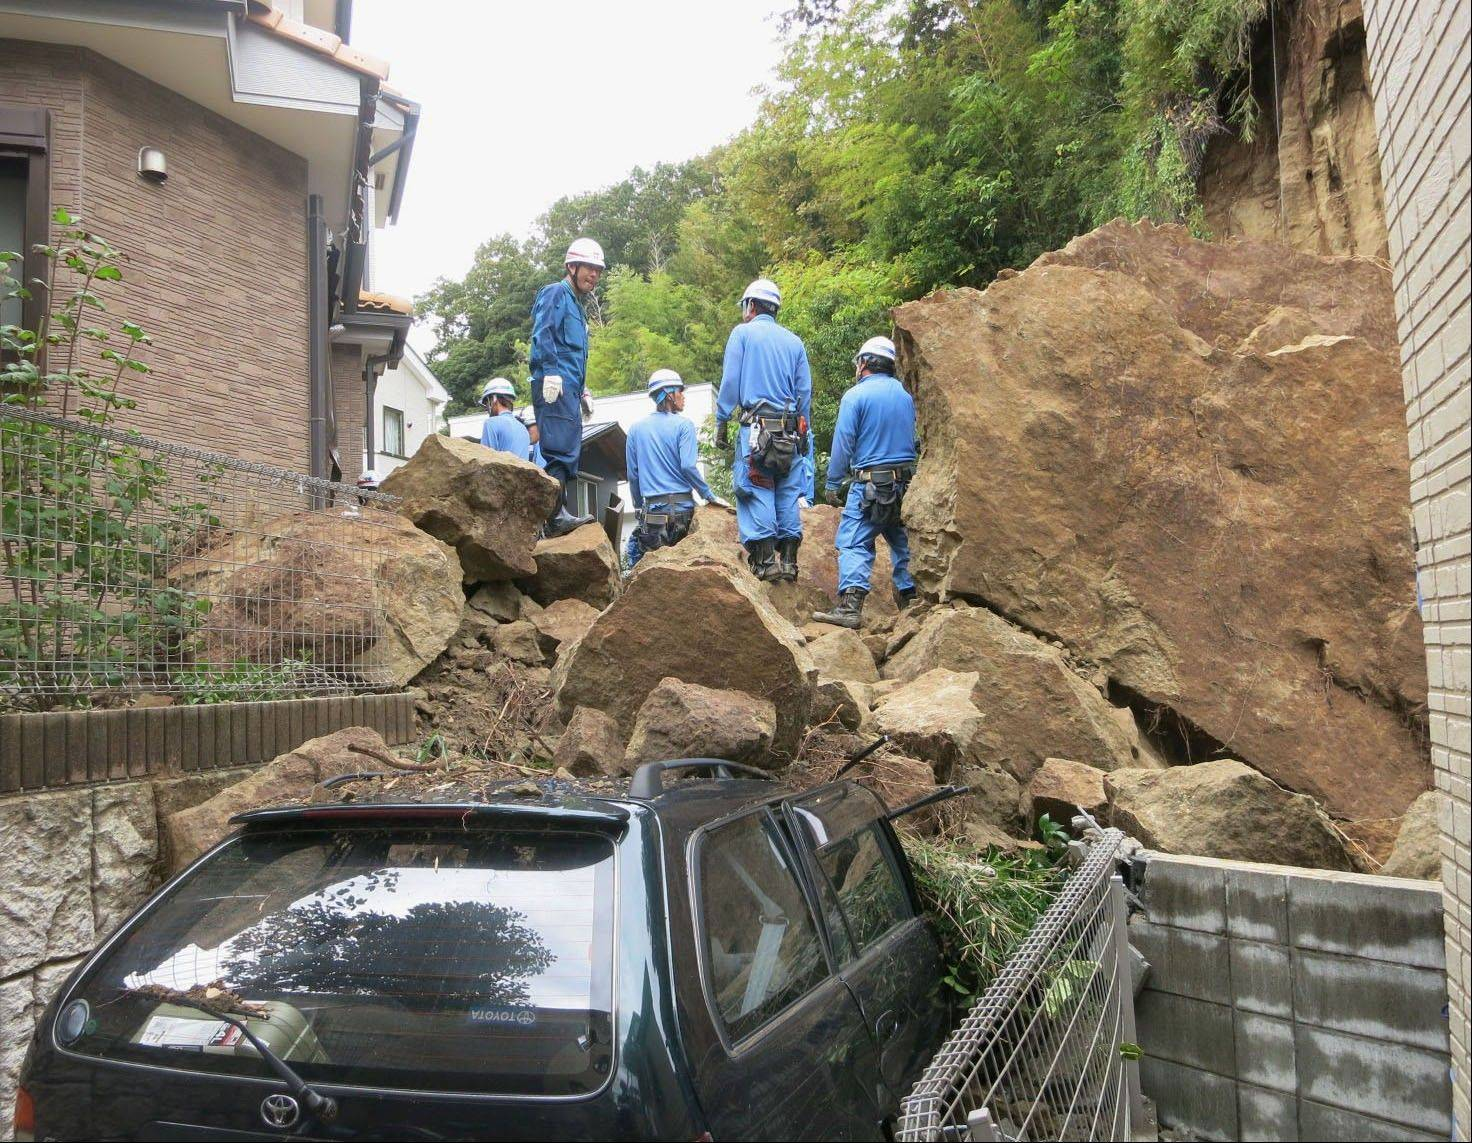 Firefighters stand on rocks fallen from a cliff over a garage and a road in a residential area in Kamakura, southwest of Tokyo, after a powerful typhoon hit Japan's metropolitan area Wednesday morning, Oct. 16, 2013.